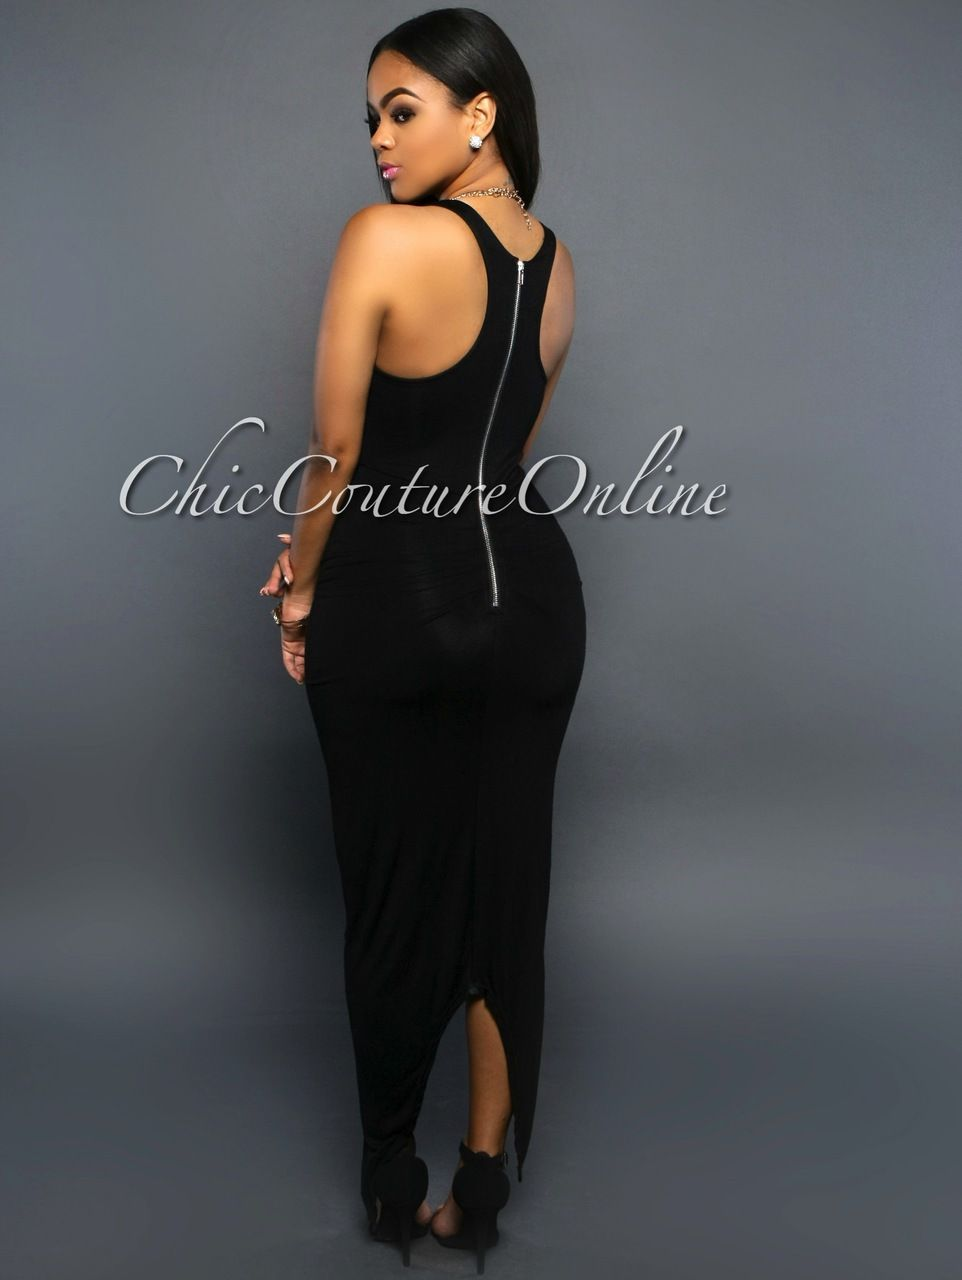 Chic Couture Online - Claudia Black Knotted Front Maxi Dress,  (http://www.chiccoutureonline.com/claudia-black-knotted-front-maxi-dress/)